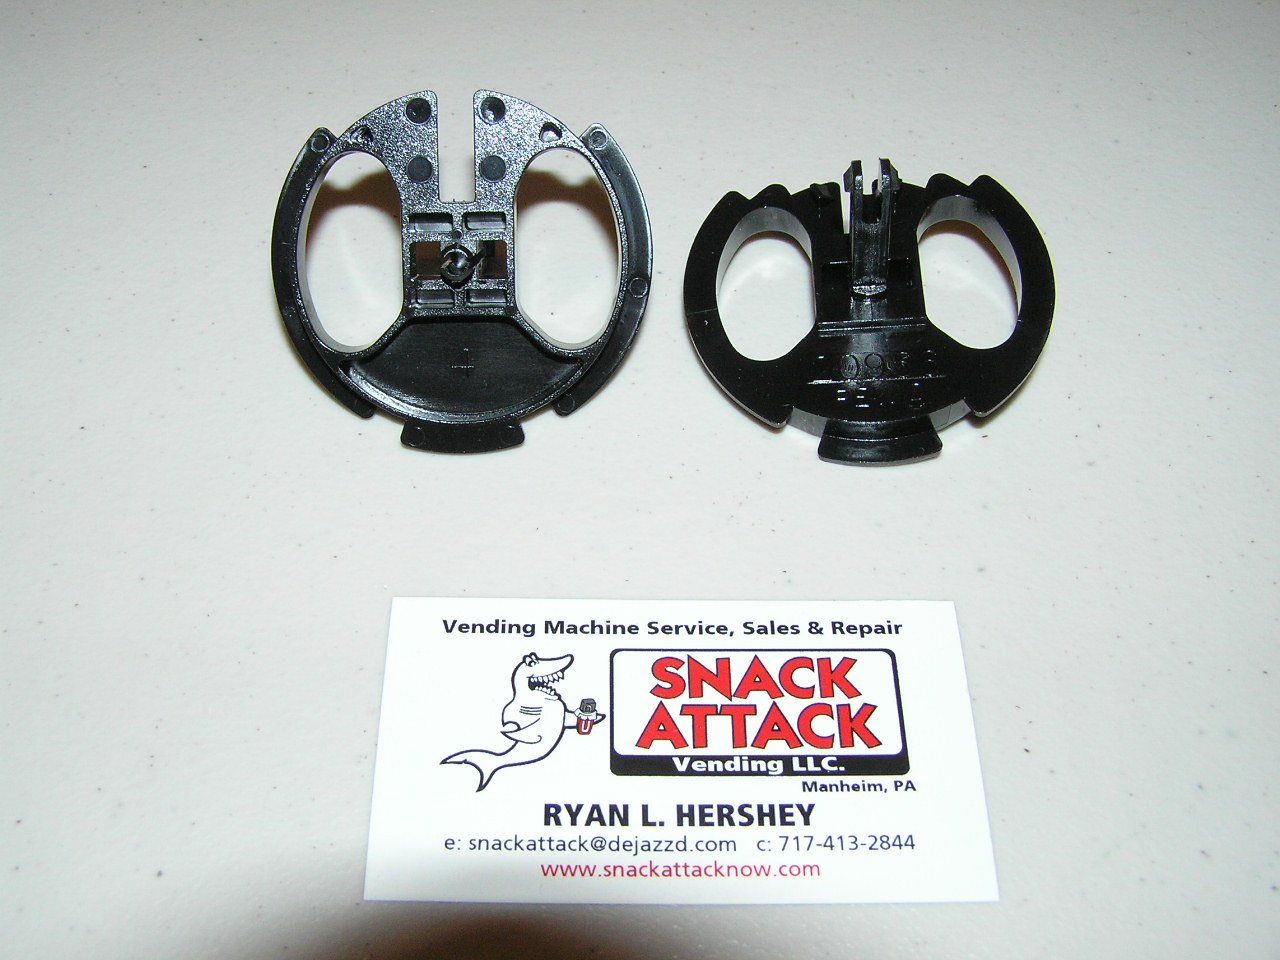 AMS 35/39 SNACK or COMBO VENDING MACHINE (2) SPIRAL HUB ADAPTORS (Part#20966)!